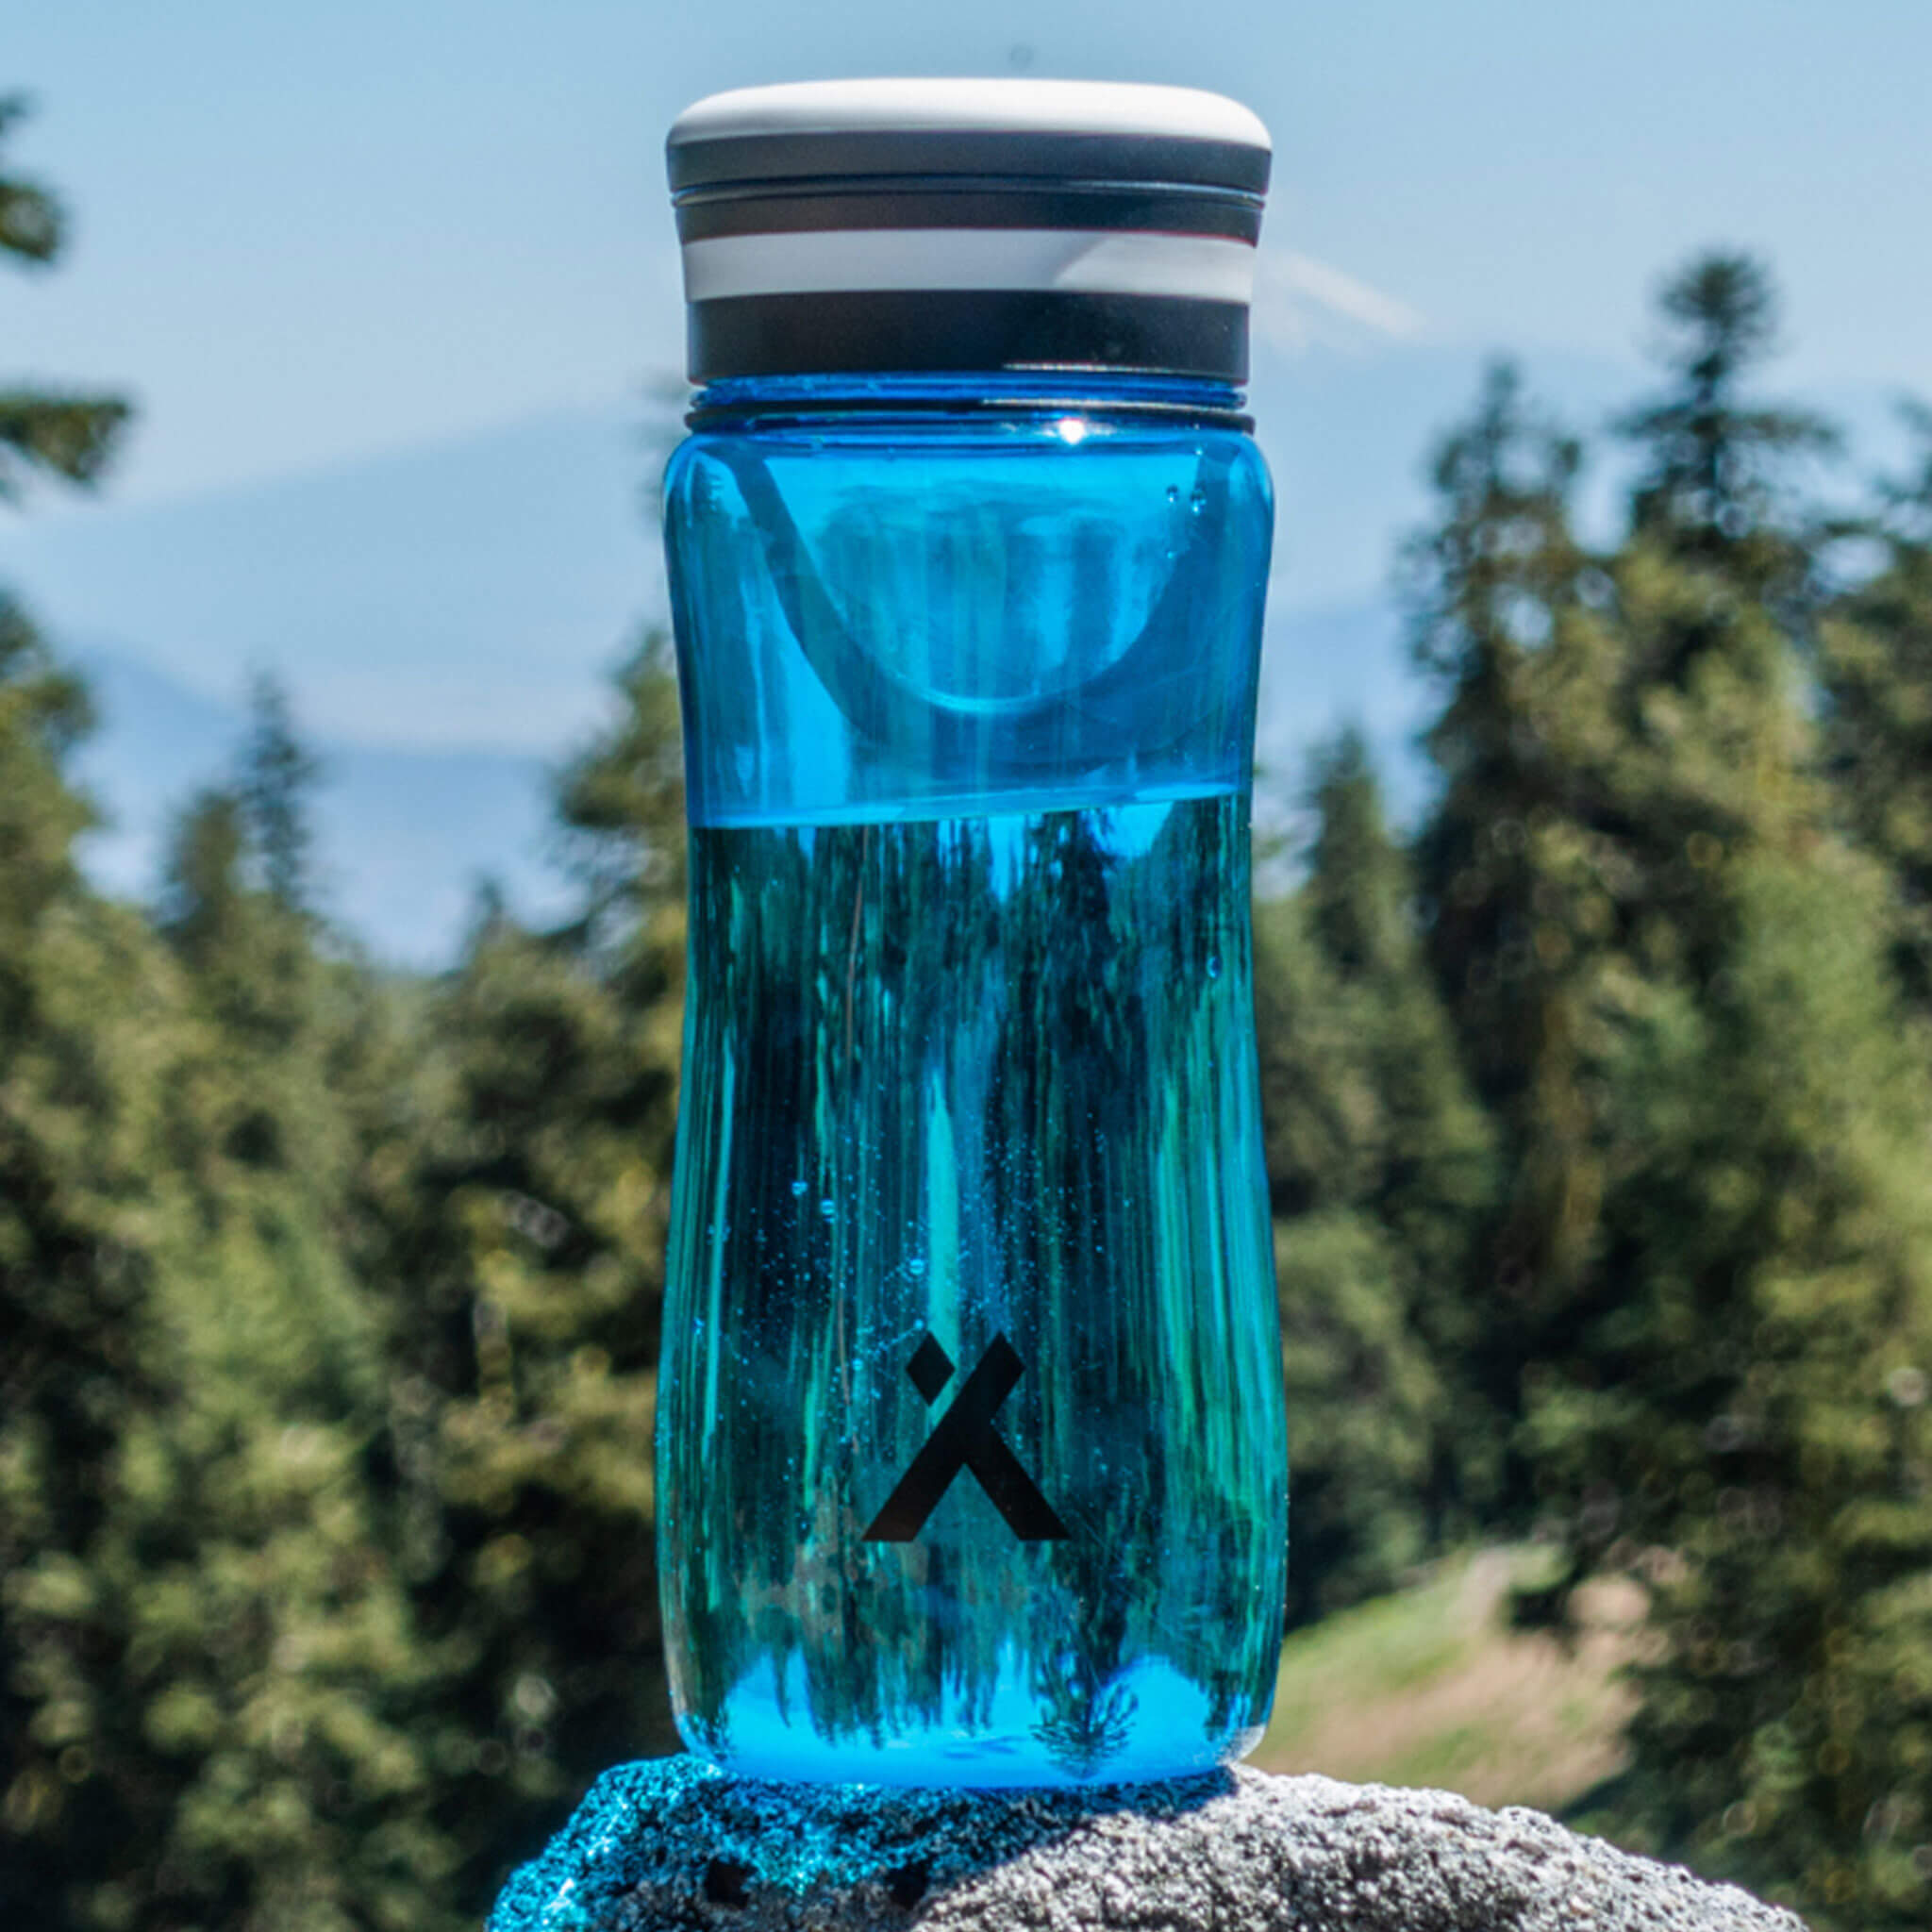 Bear Grylls Solar Bottle against bright blue sky